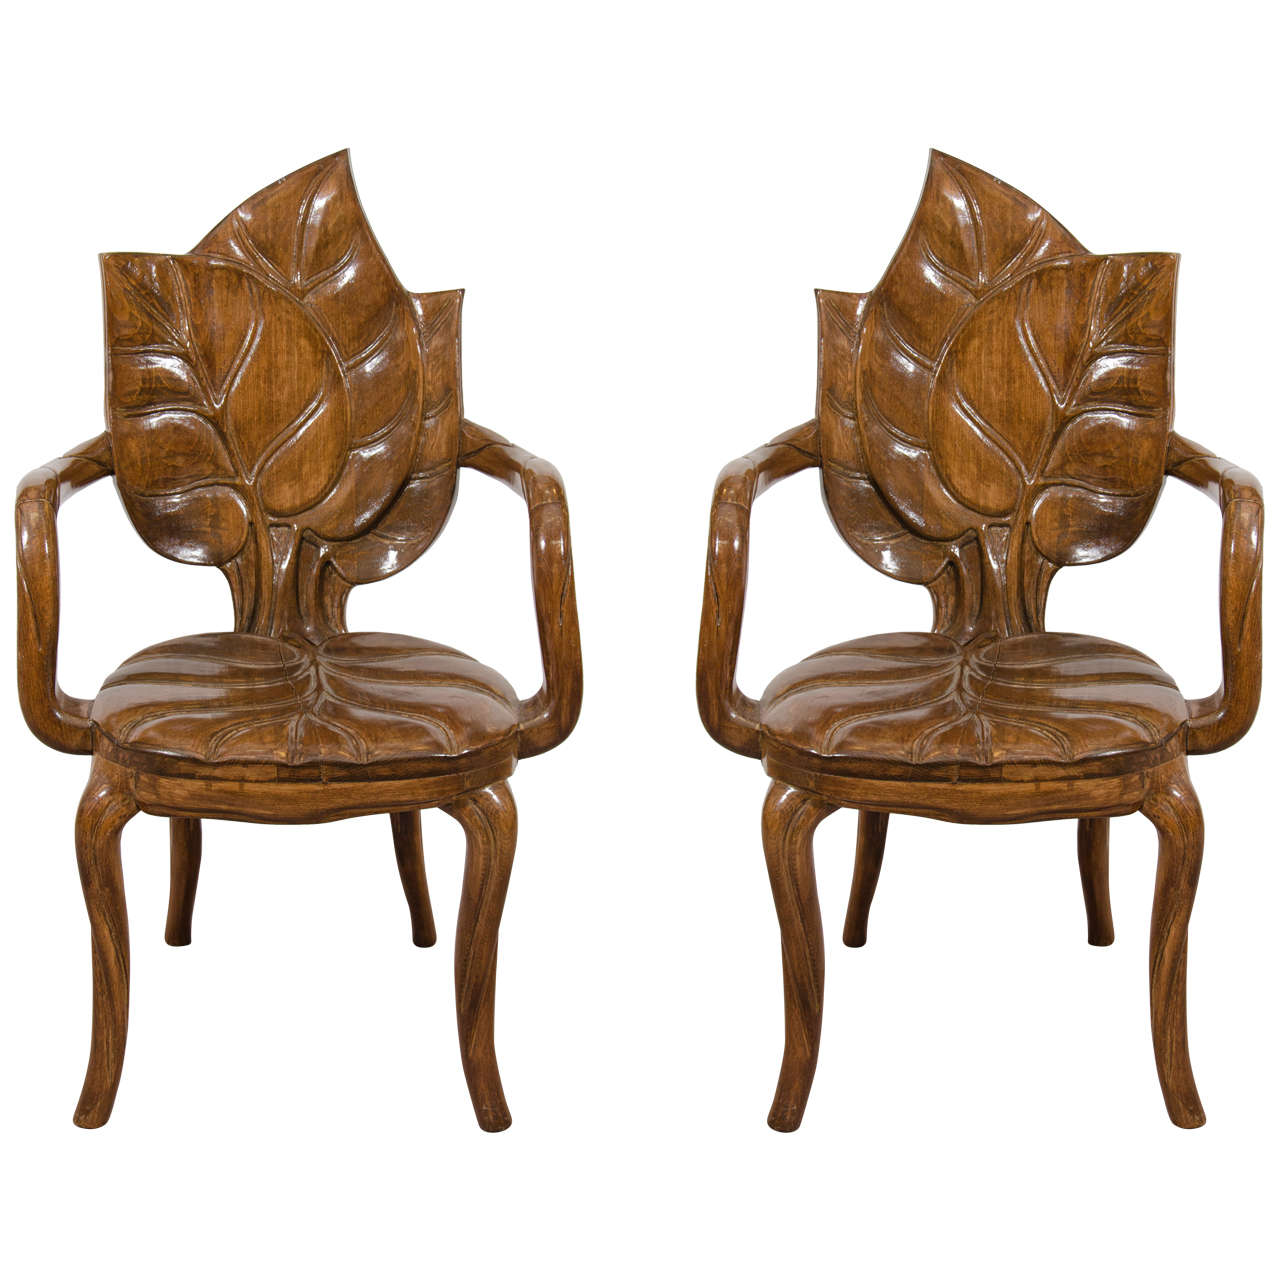 Art Nouveau Style Pair Of Sculptural Leaf Motif Armchairs